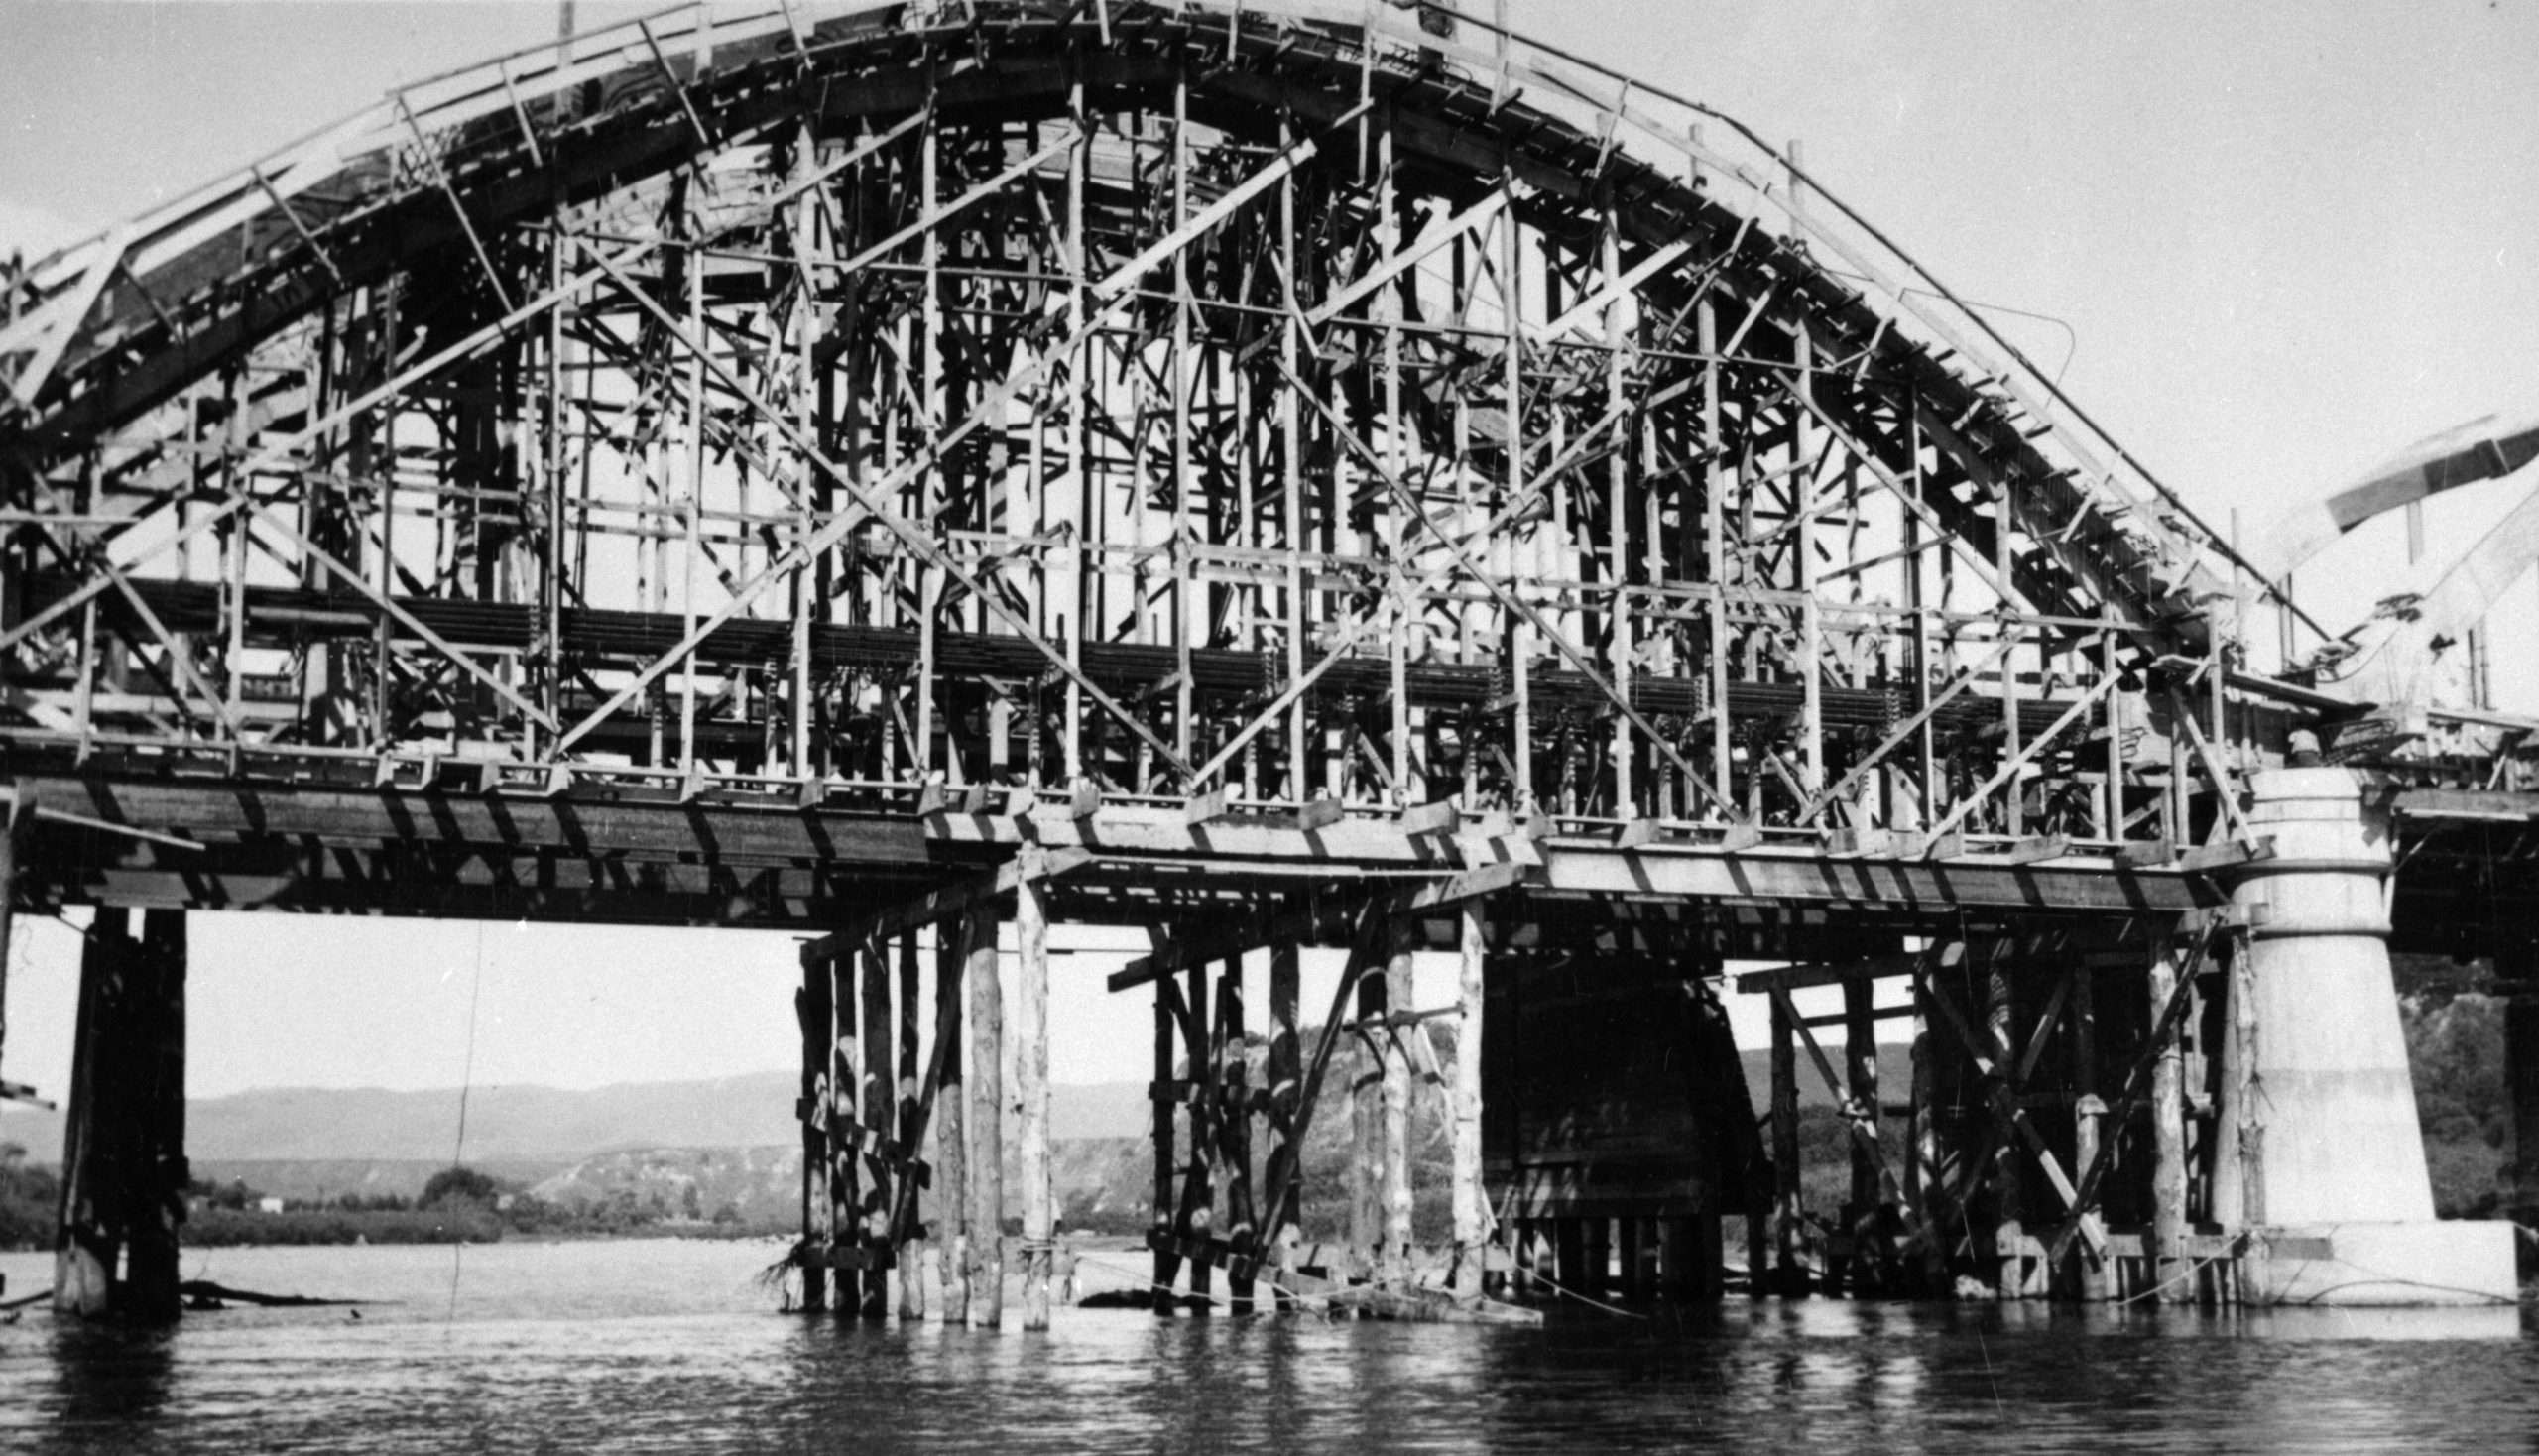 Image depicts concrete bridge surrounded by wooden scaffolding.